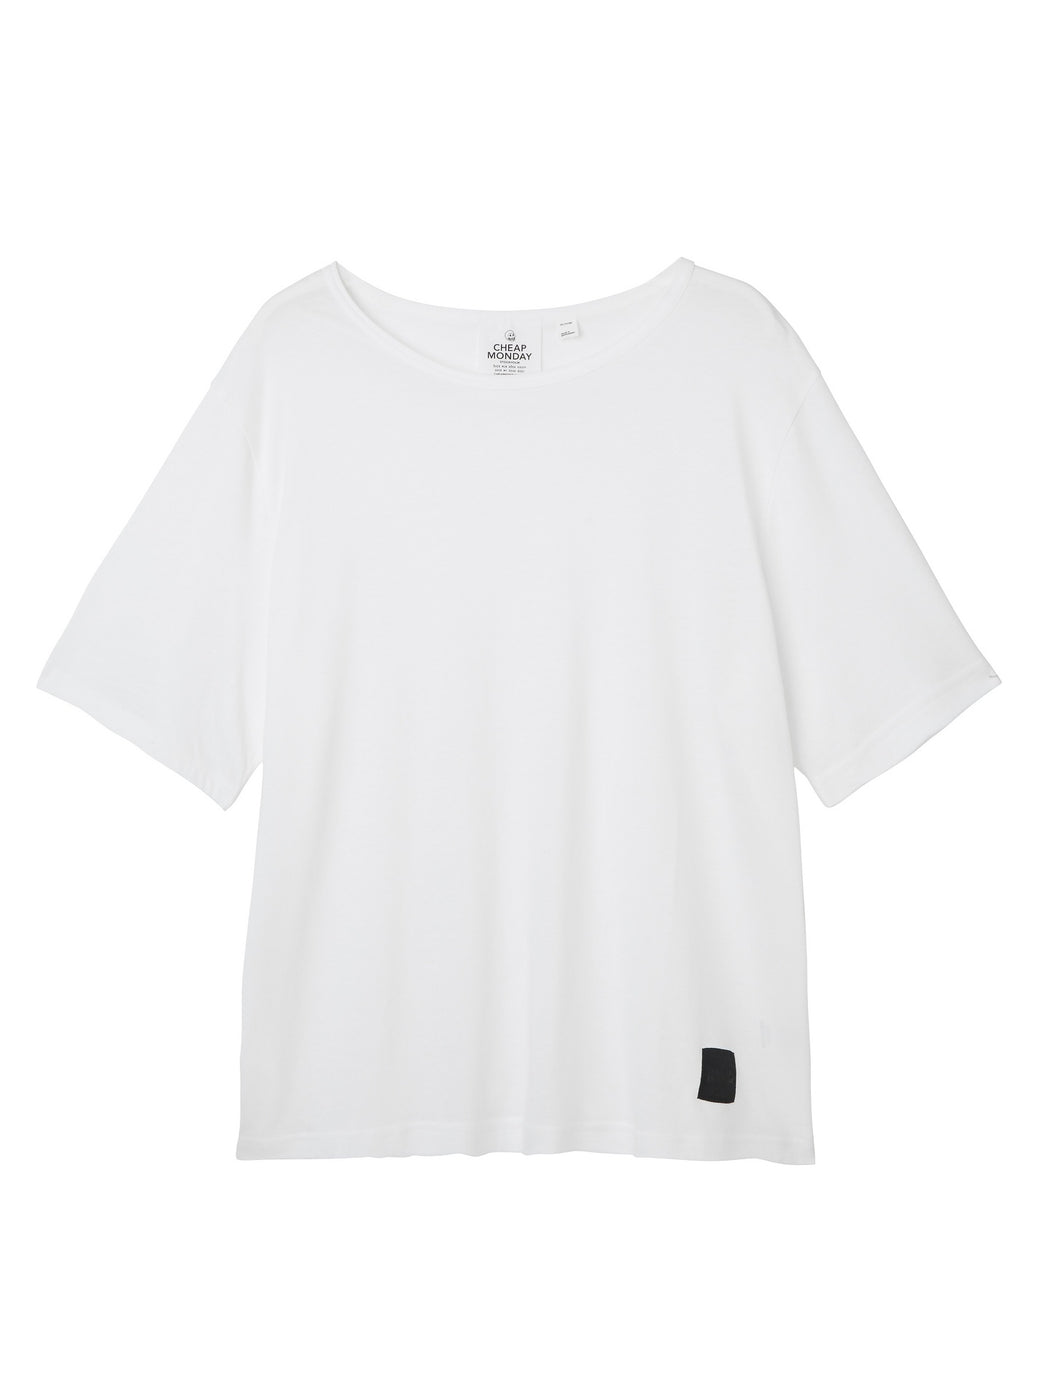 Spacious Tee in White